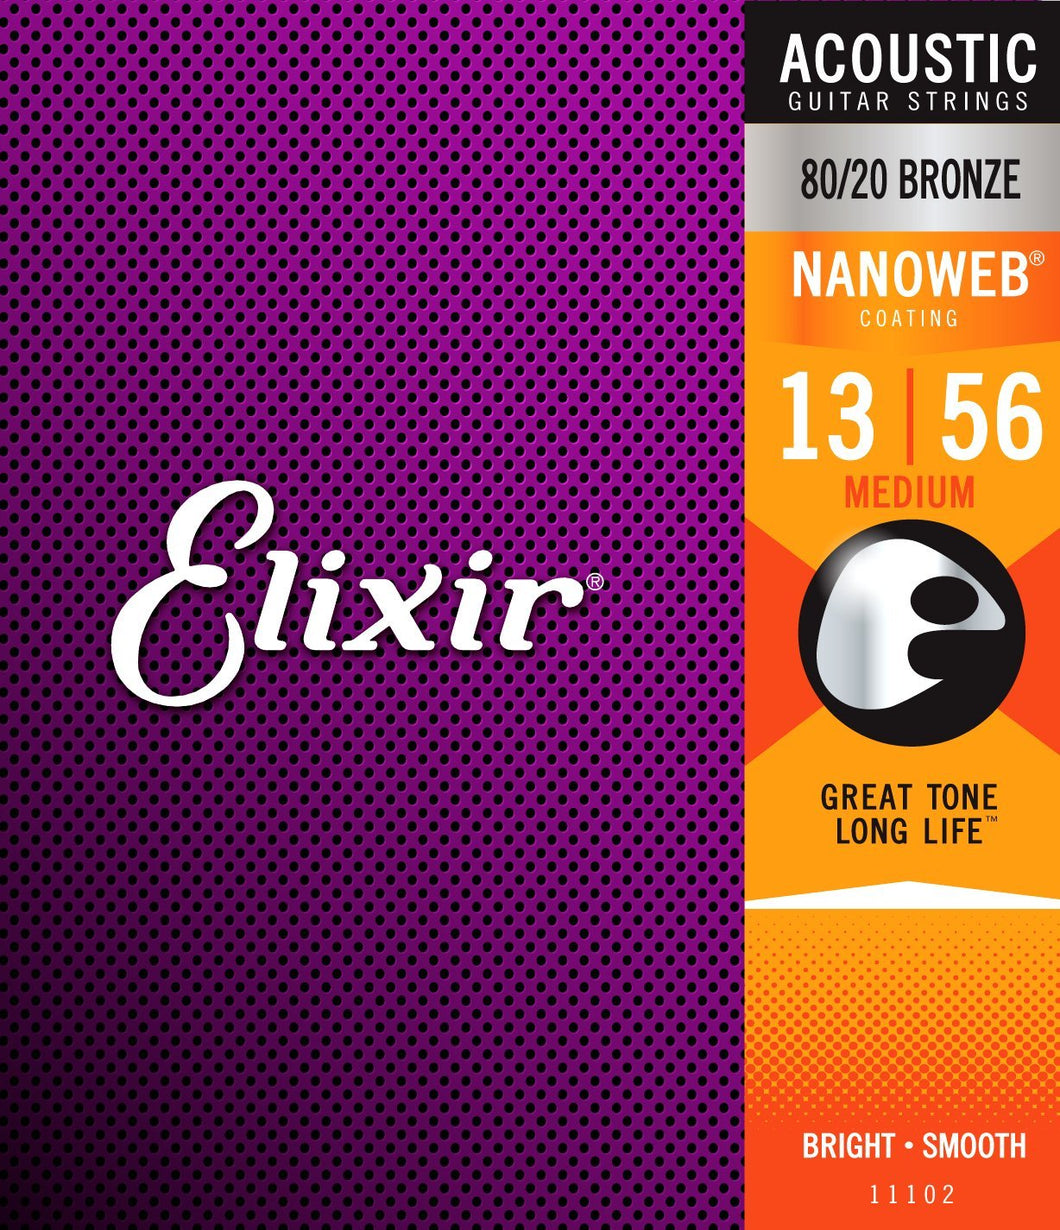 Elixir 11102 80/20 Bronze Nanoweb Coating 13-56 Acoustic Guitar Strings